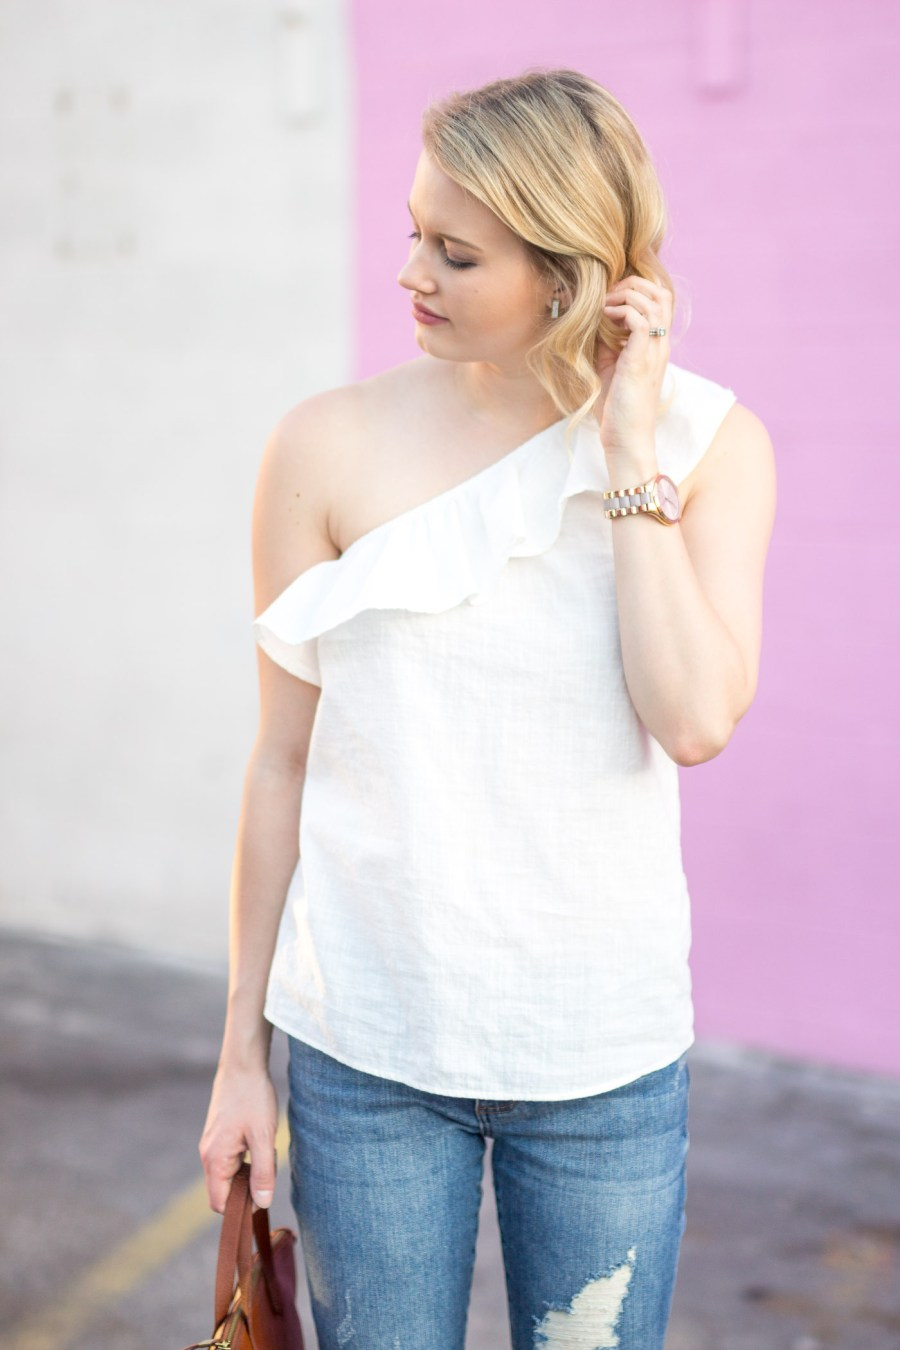 The Best One-Shoulder Tops for Spring, spring outfit idea, fashion blogger, Treats and Trends